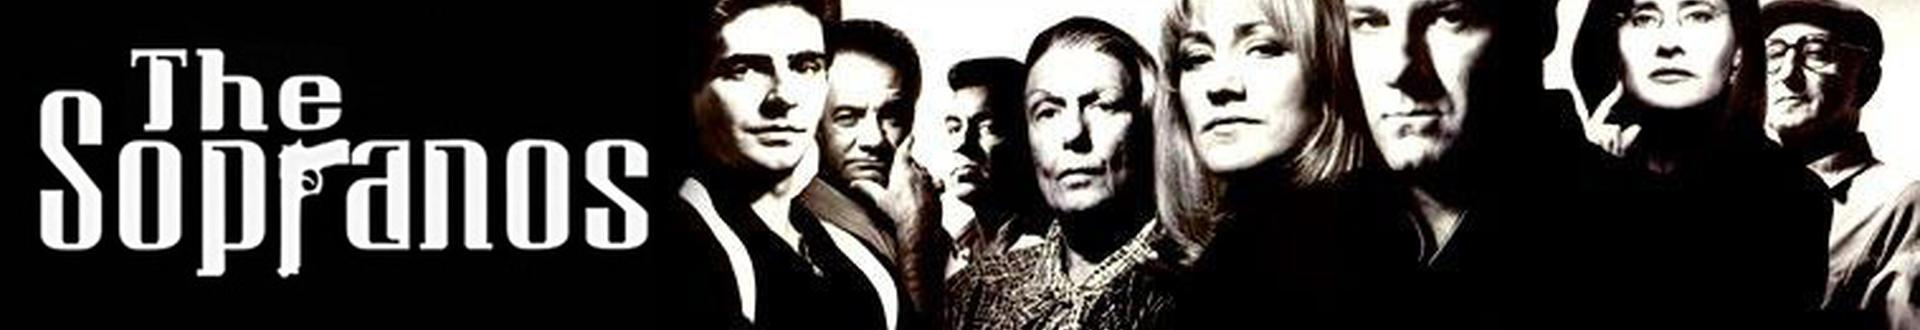 Image illustrative de The Sopranos